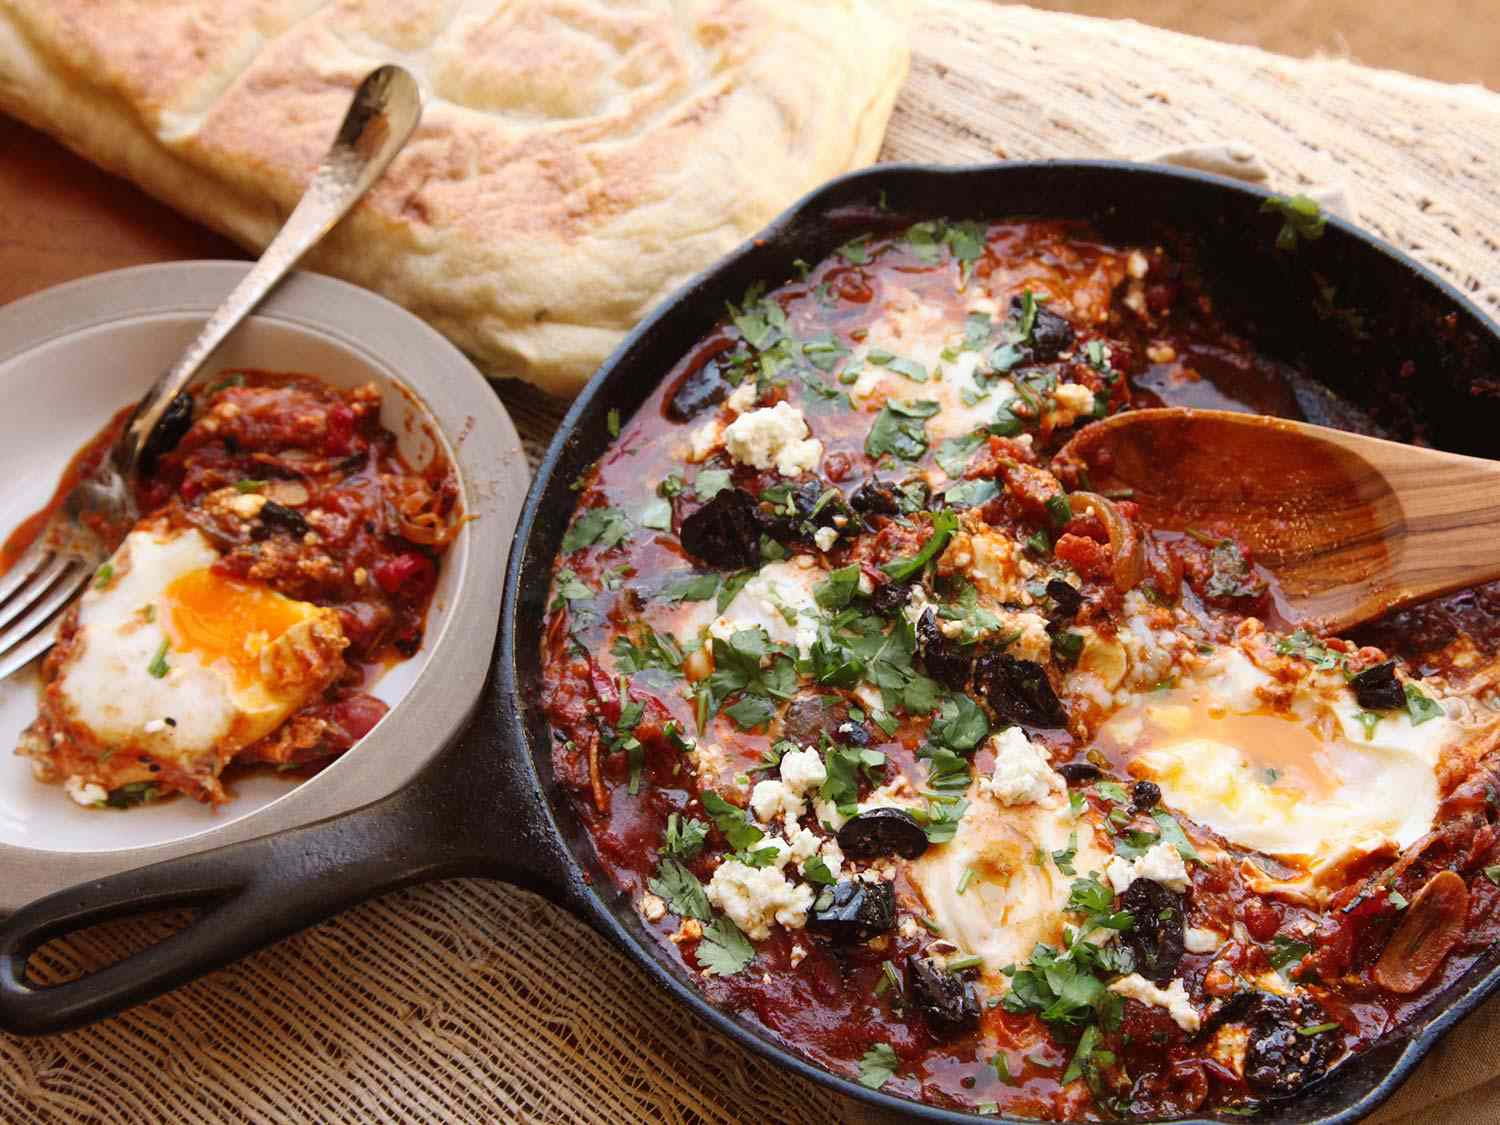 Shakshuka in a cast iron skillet with a serving in a small bowl on the side, with pita bread in the background.